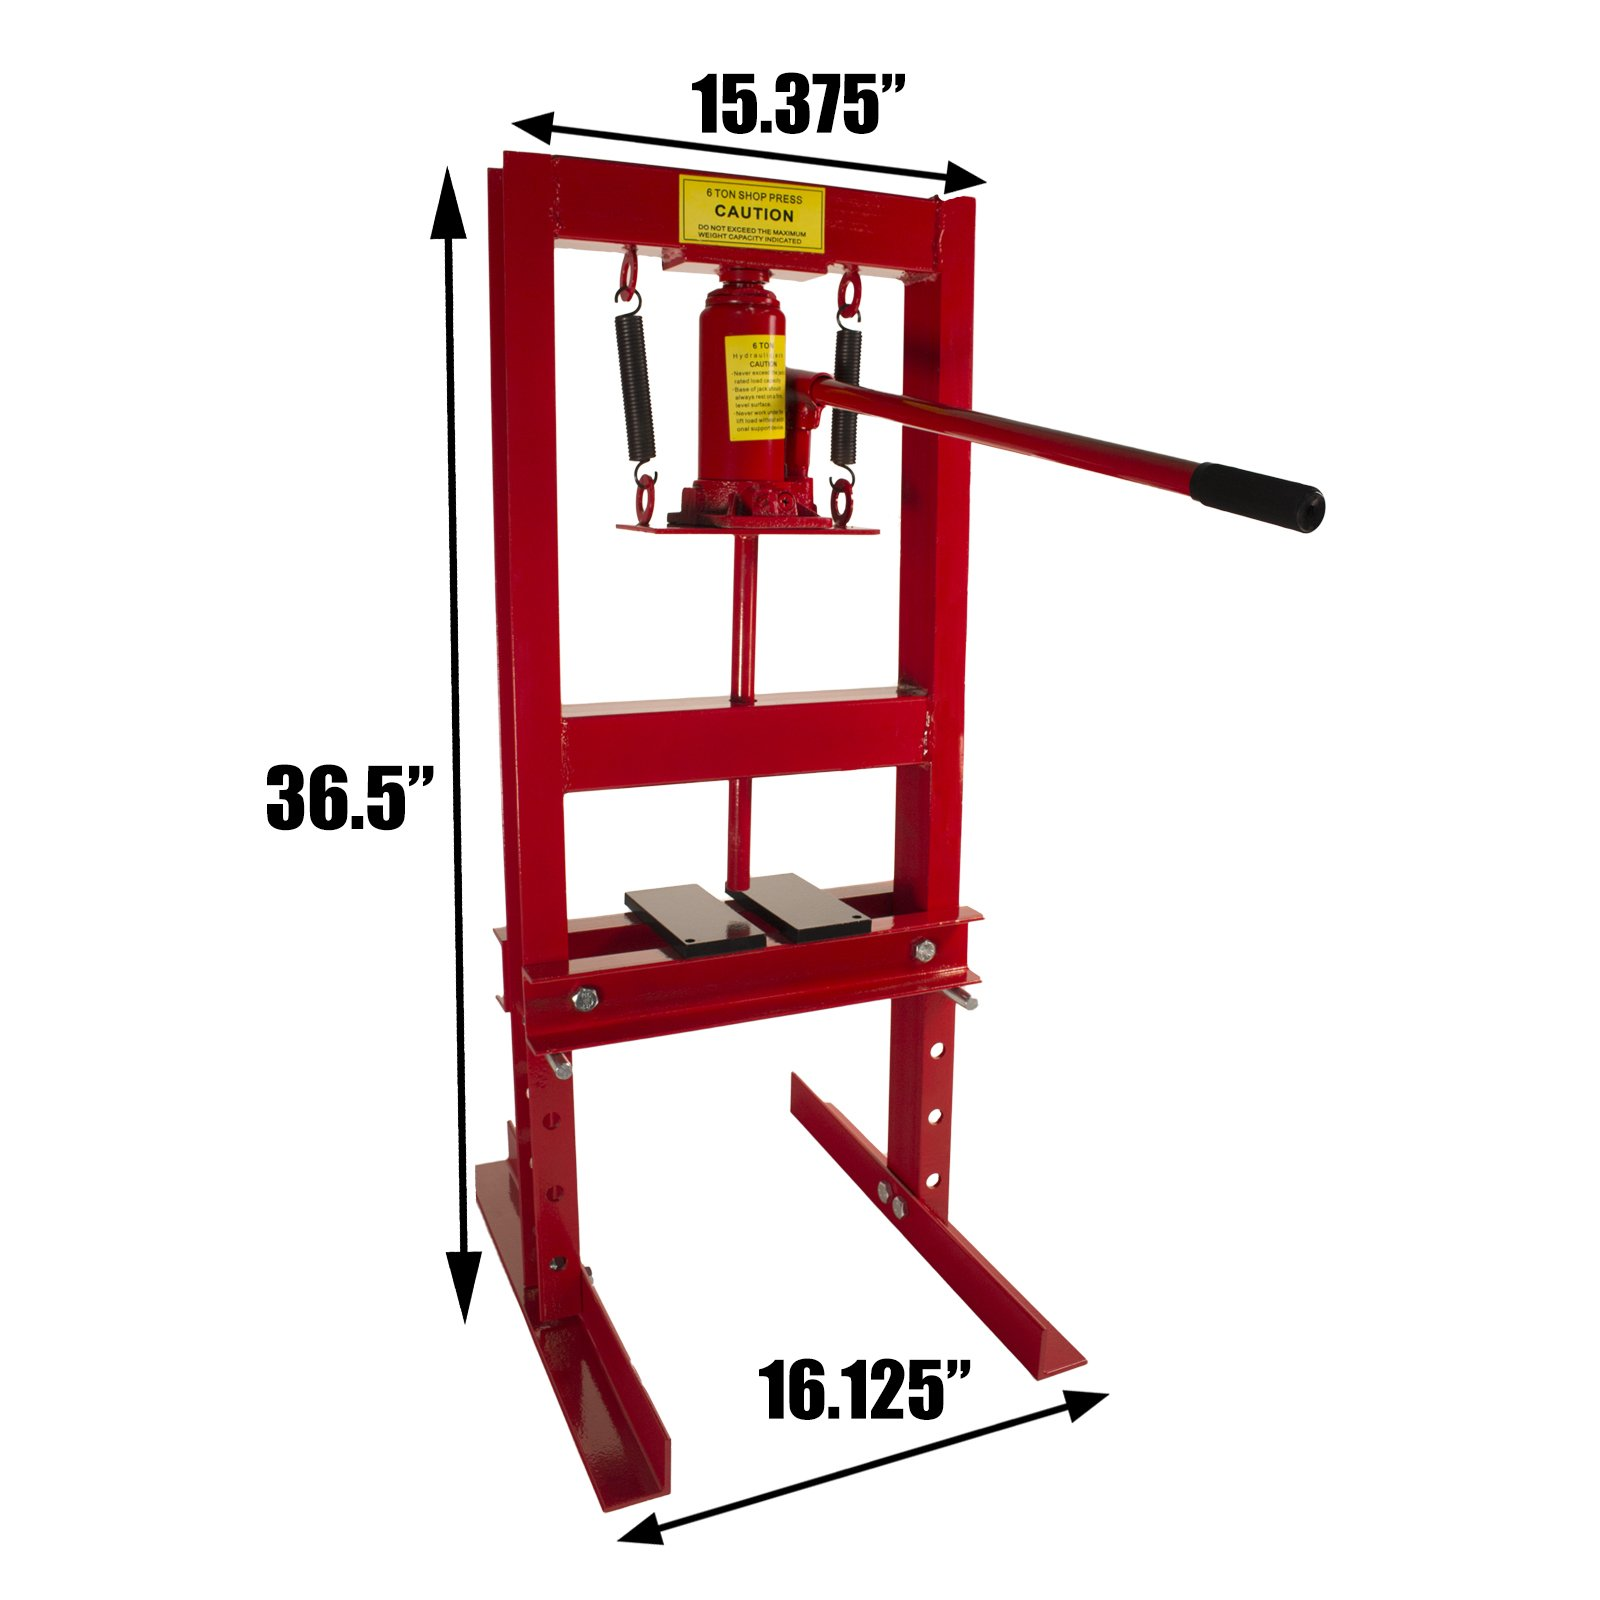 Dragway Tools 6-Ton Hydraulic Shop Floor Press with Press Plates and H Frame is Ideal for Gears and Bearings by Dragway Tools (Image #2)